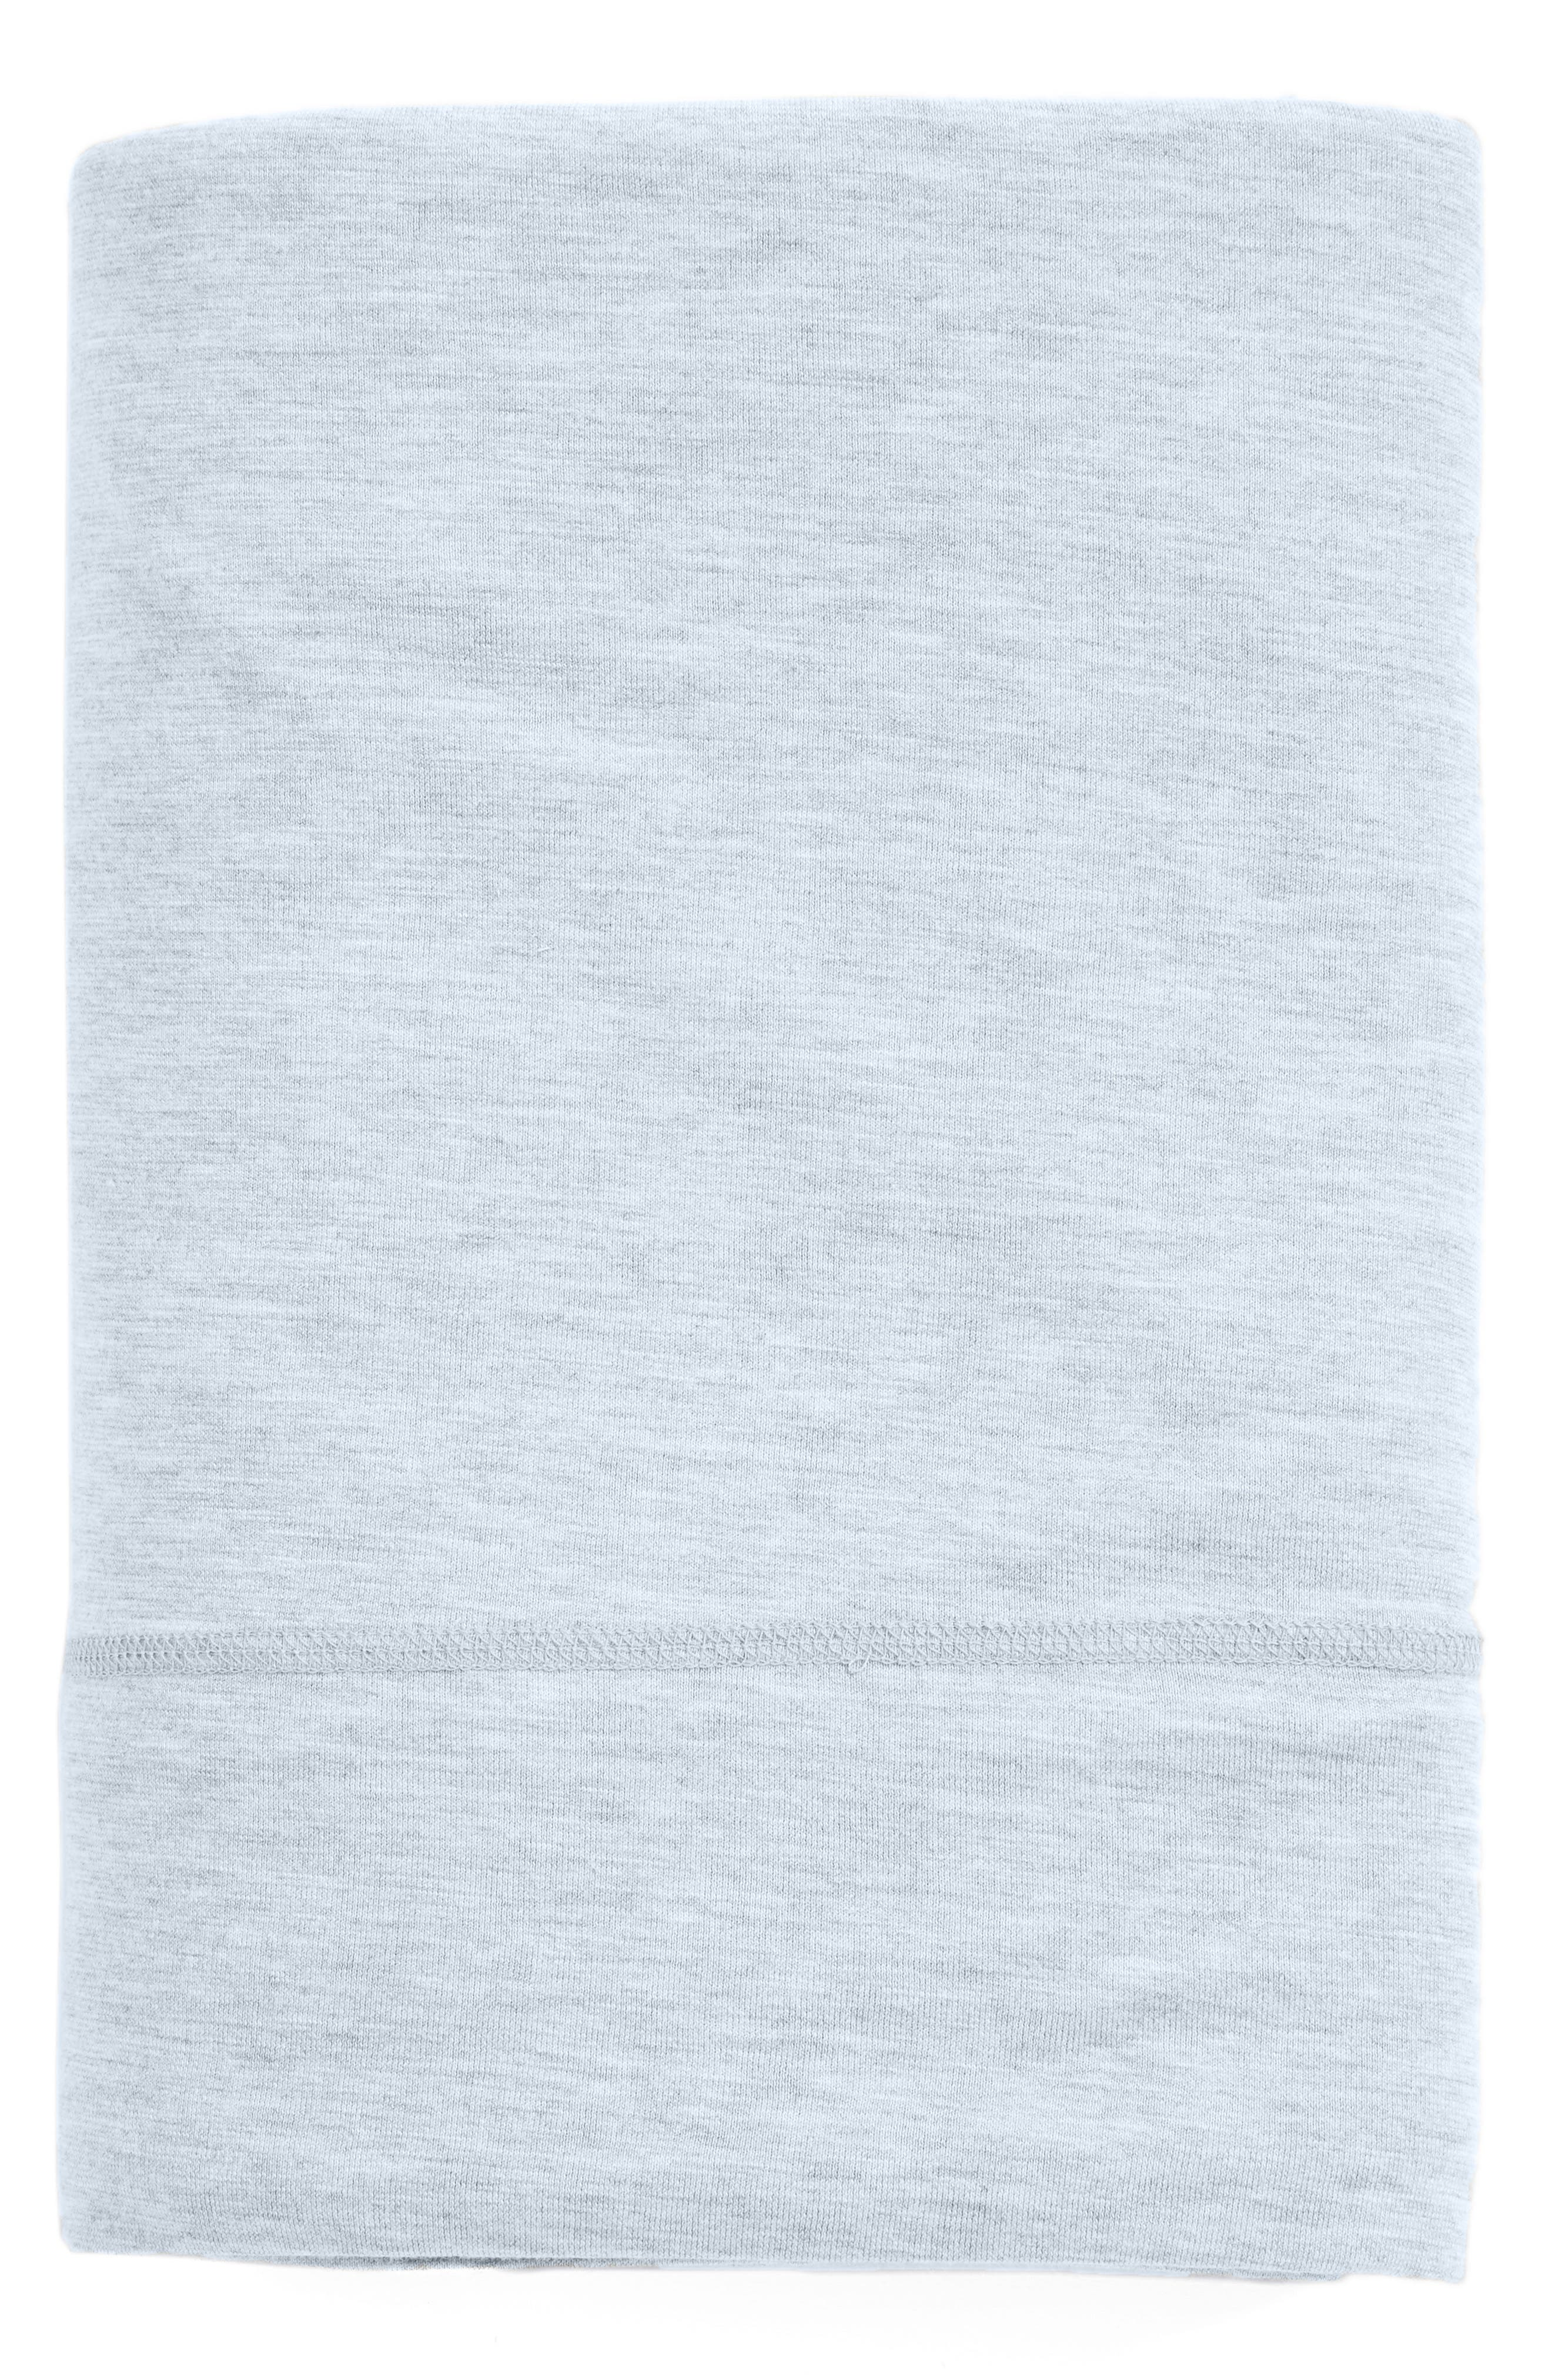 Calvin Klein Modern Cotton Collection Cotton & Modal Flat Sheet